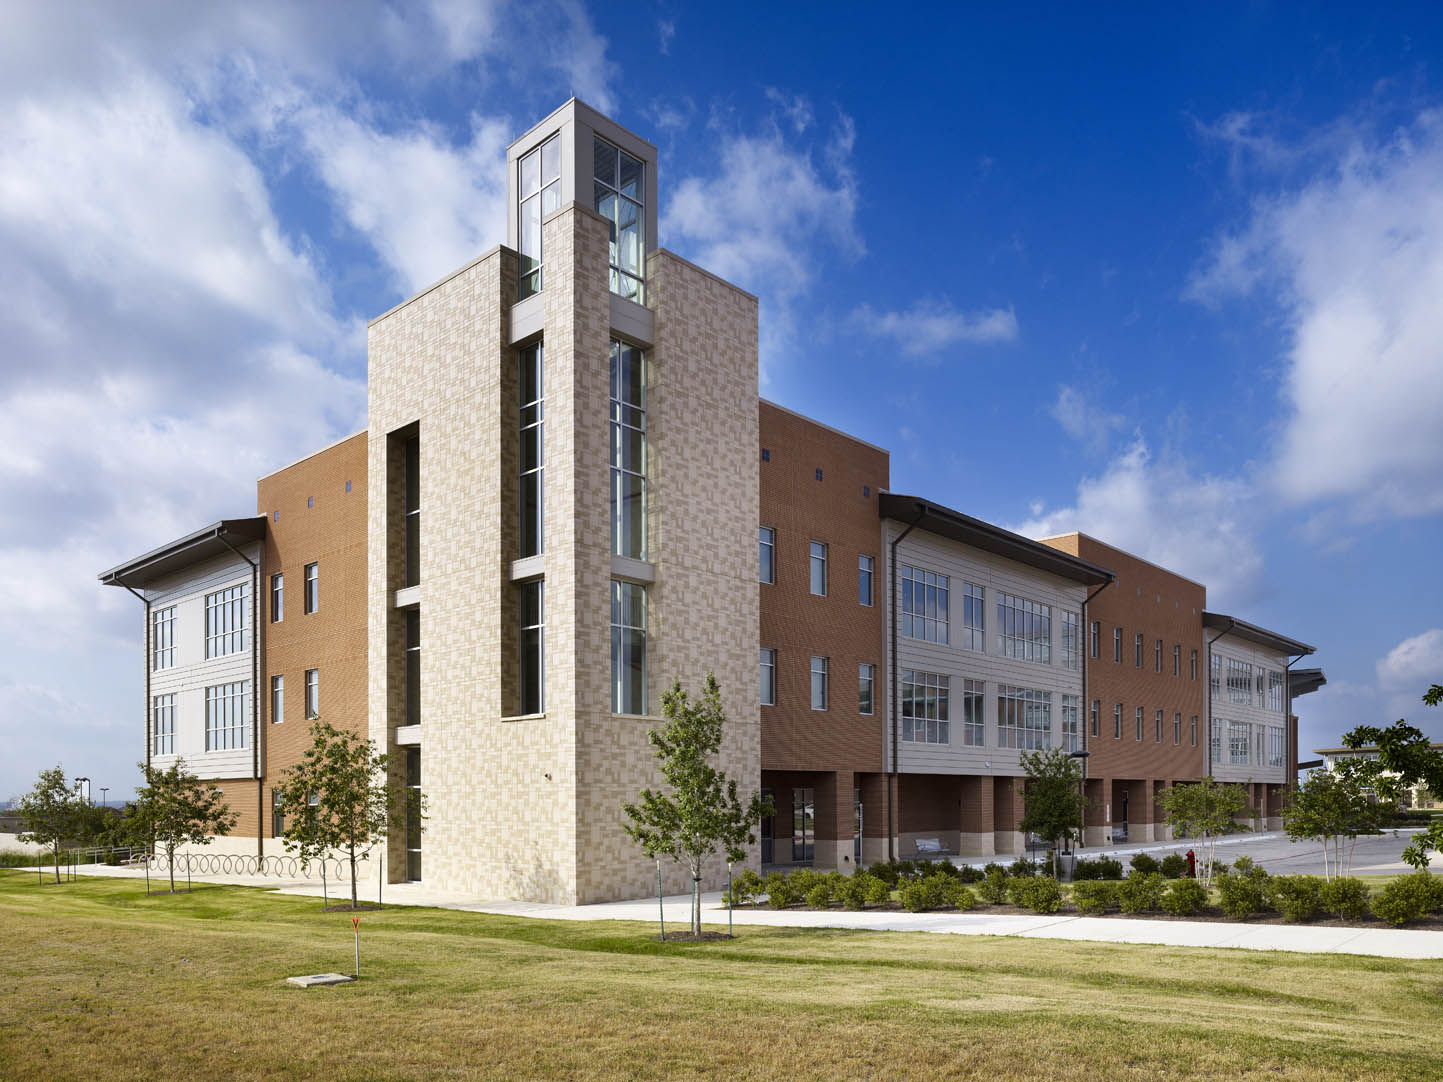 Acc announces leed silver certification for round rock campus round 1betcityfo Image collections